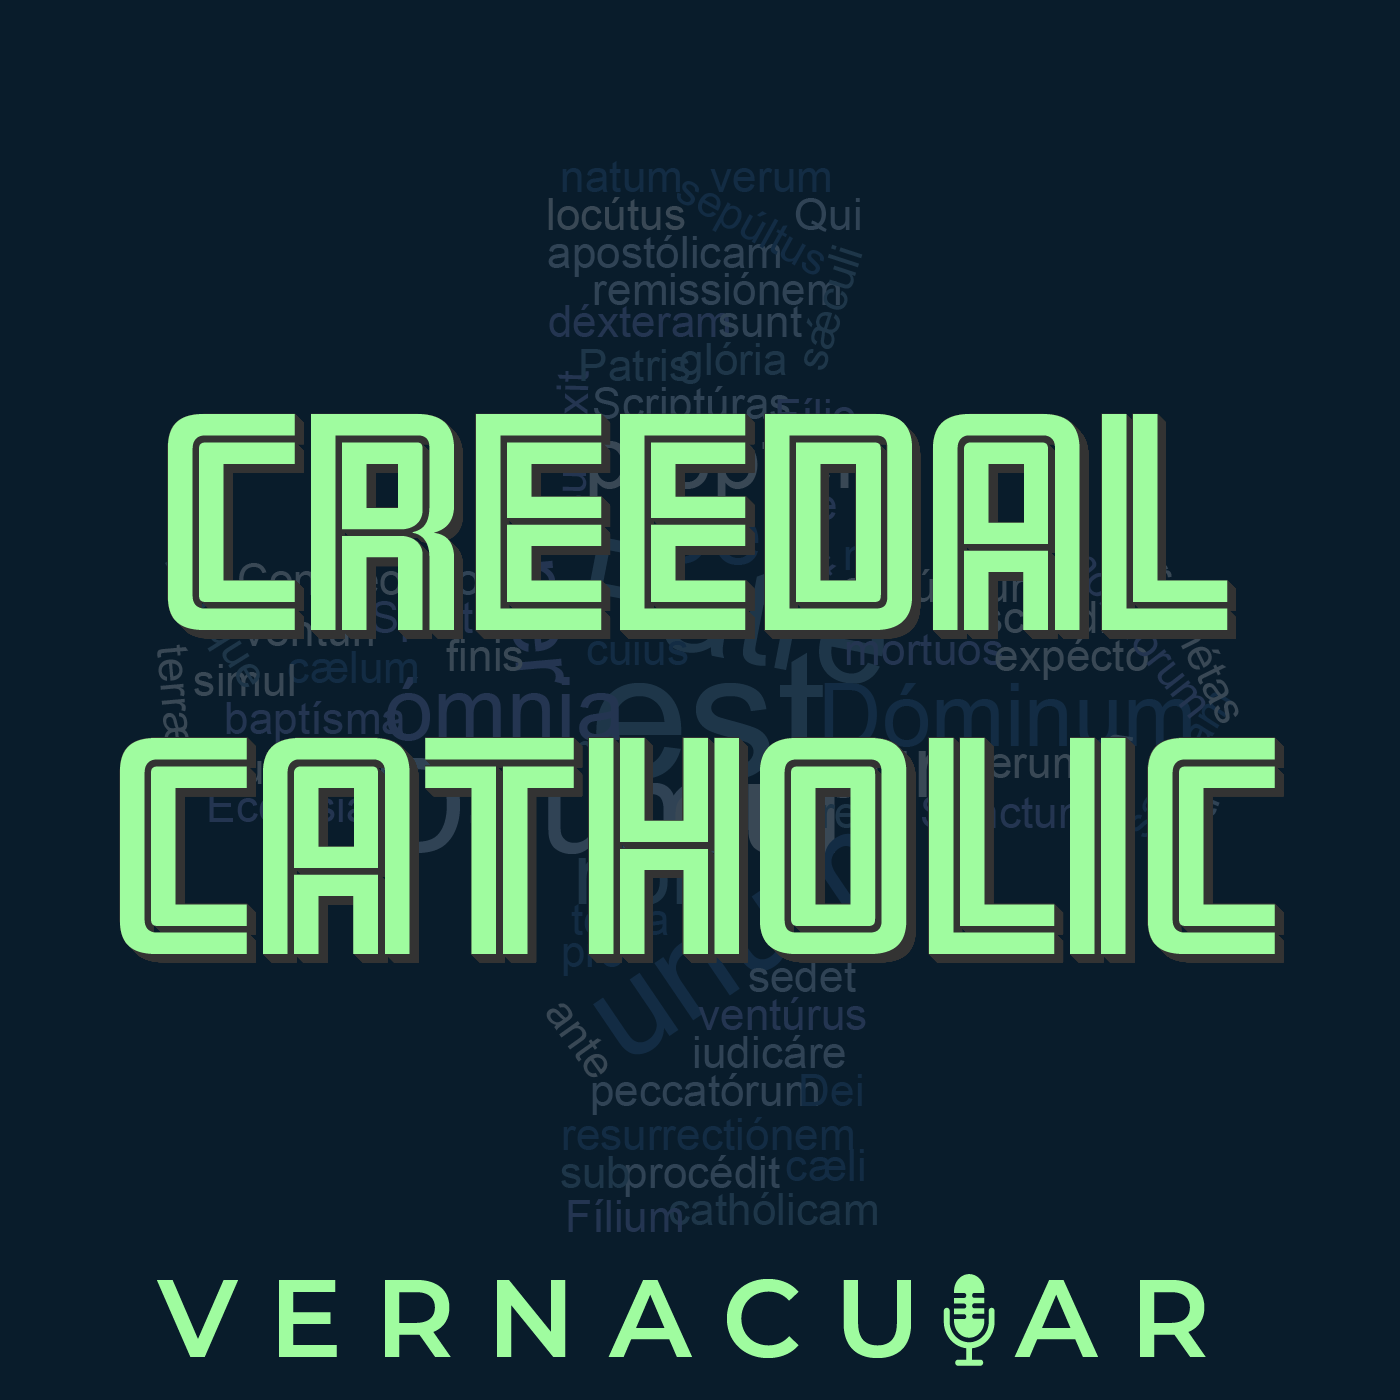 Coming Soon: The Creedal Catholic!